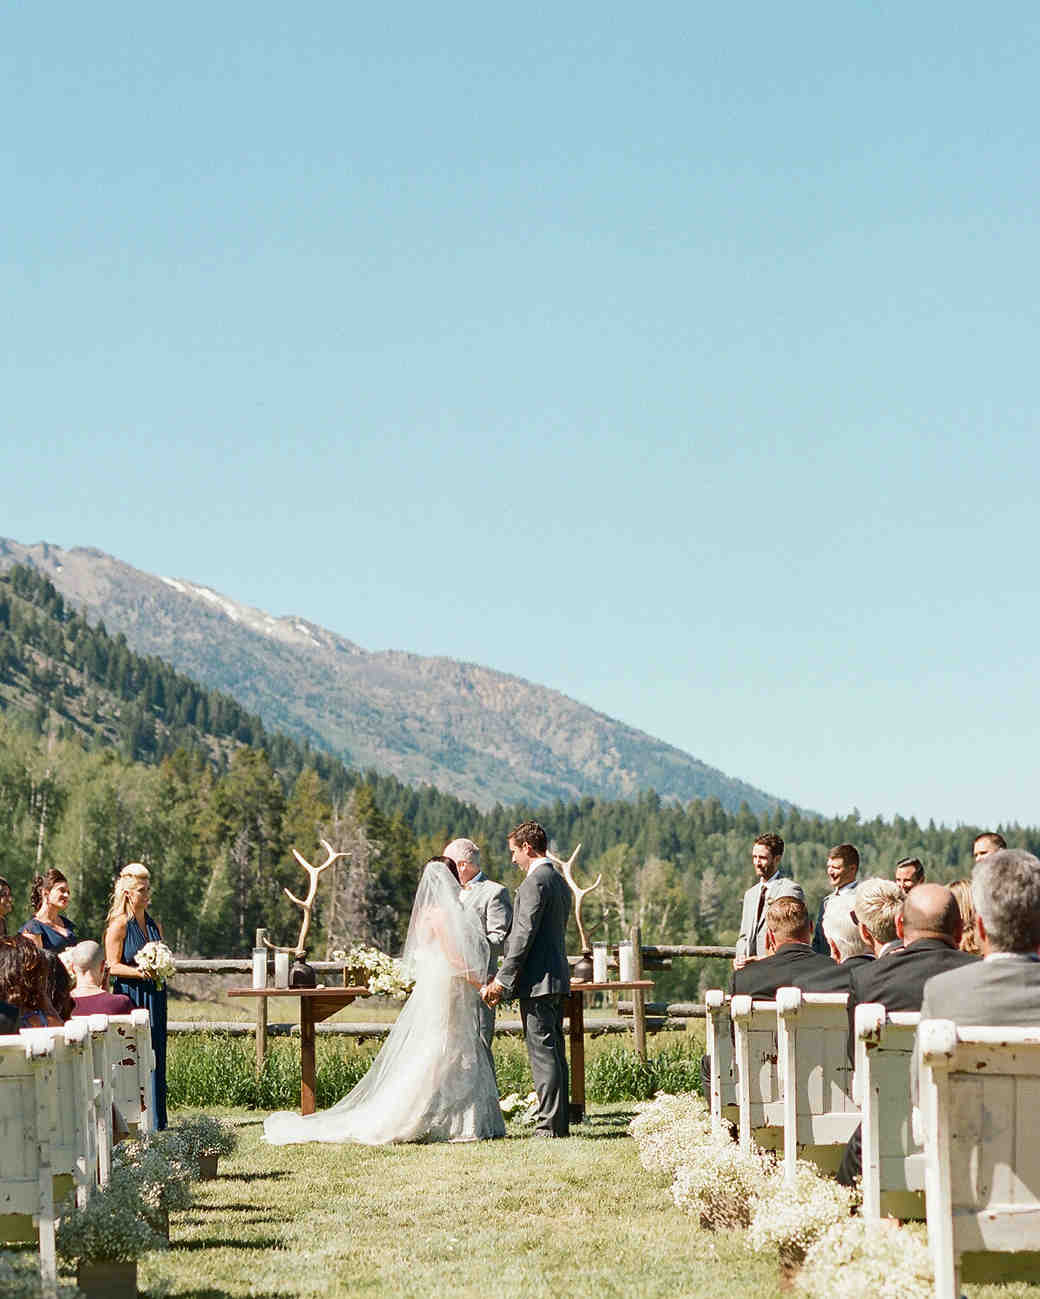 kalen boyd wedding ceremony